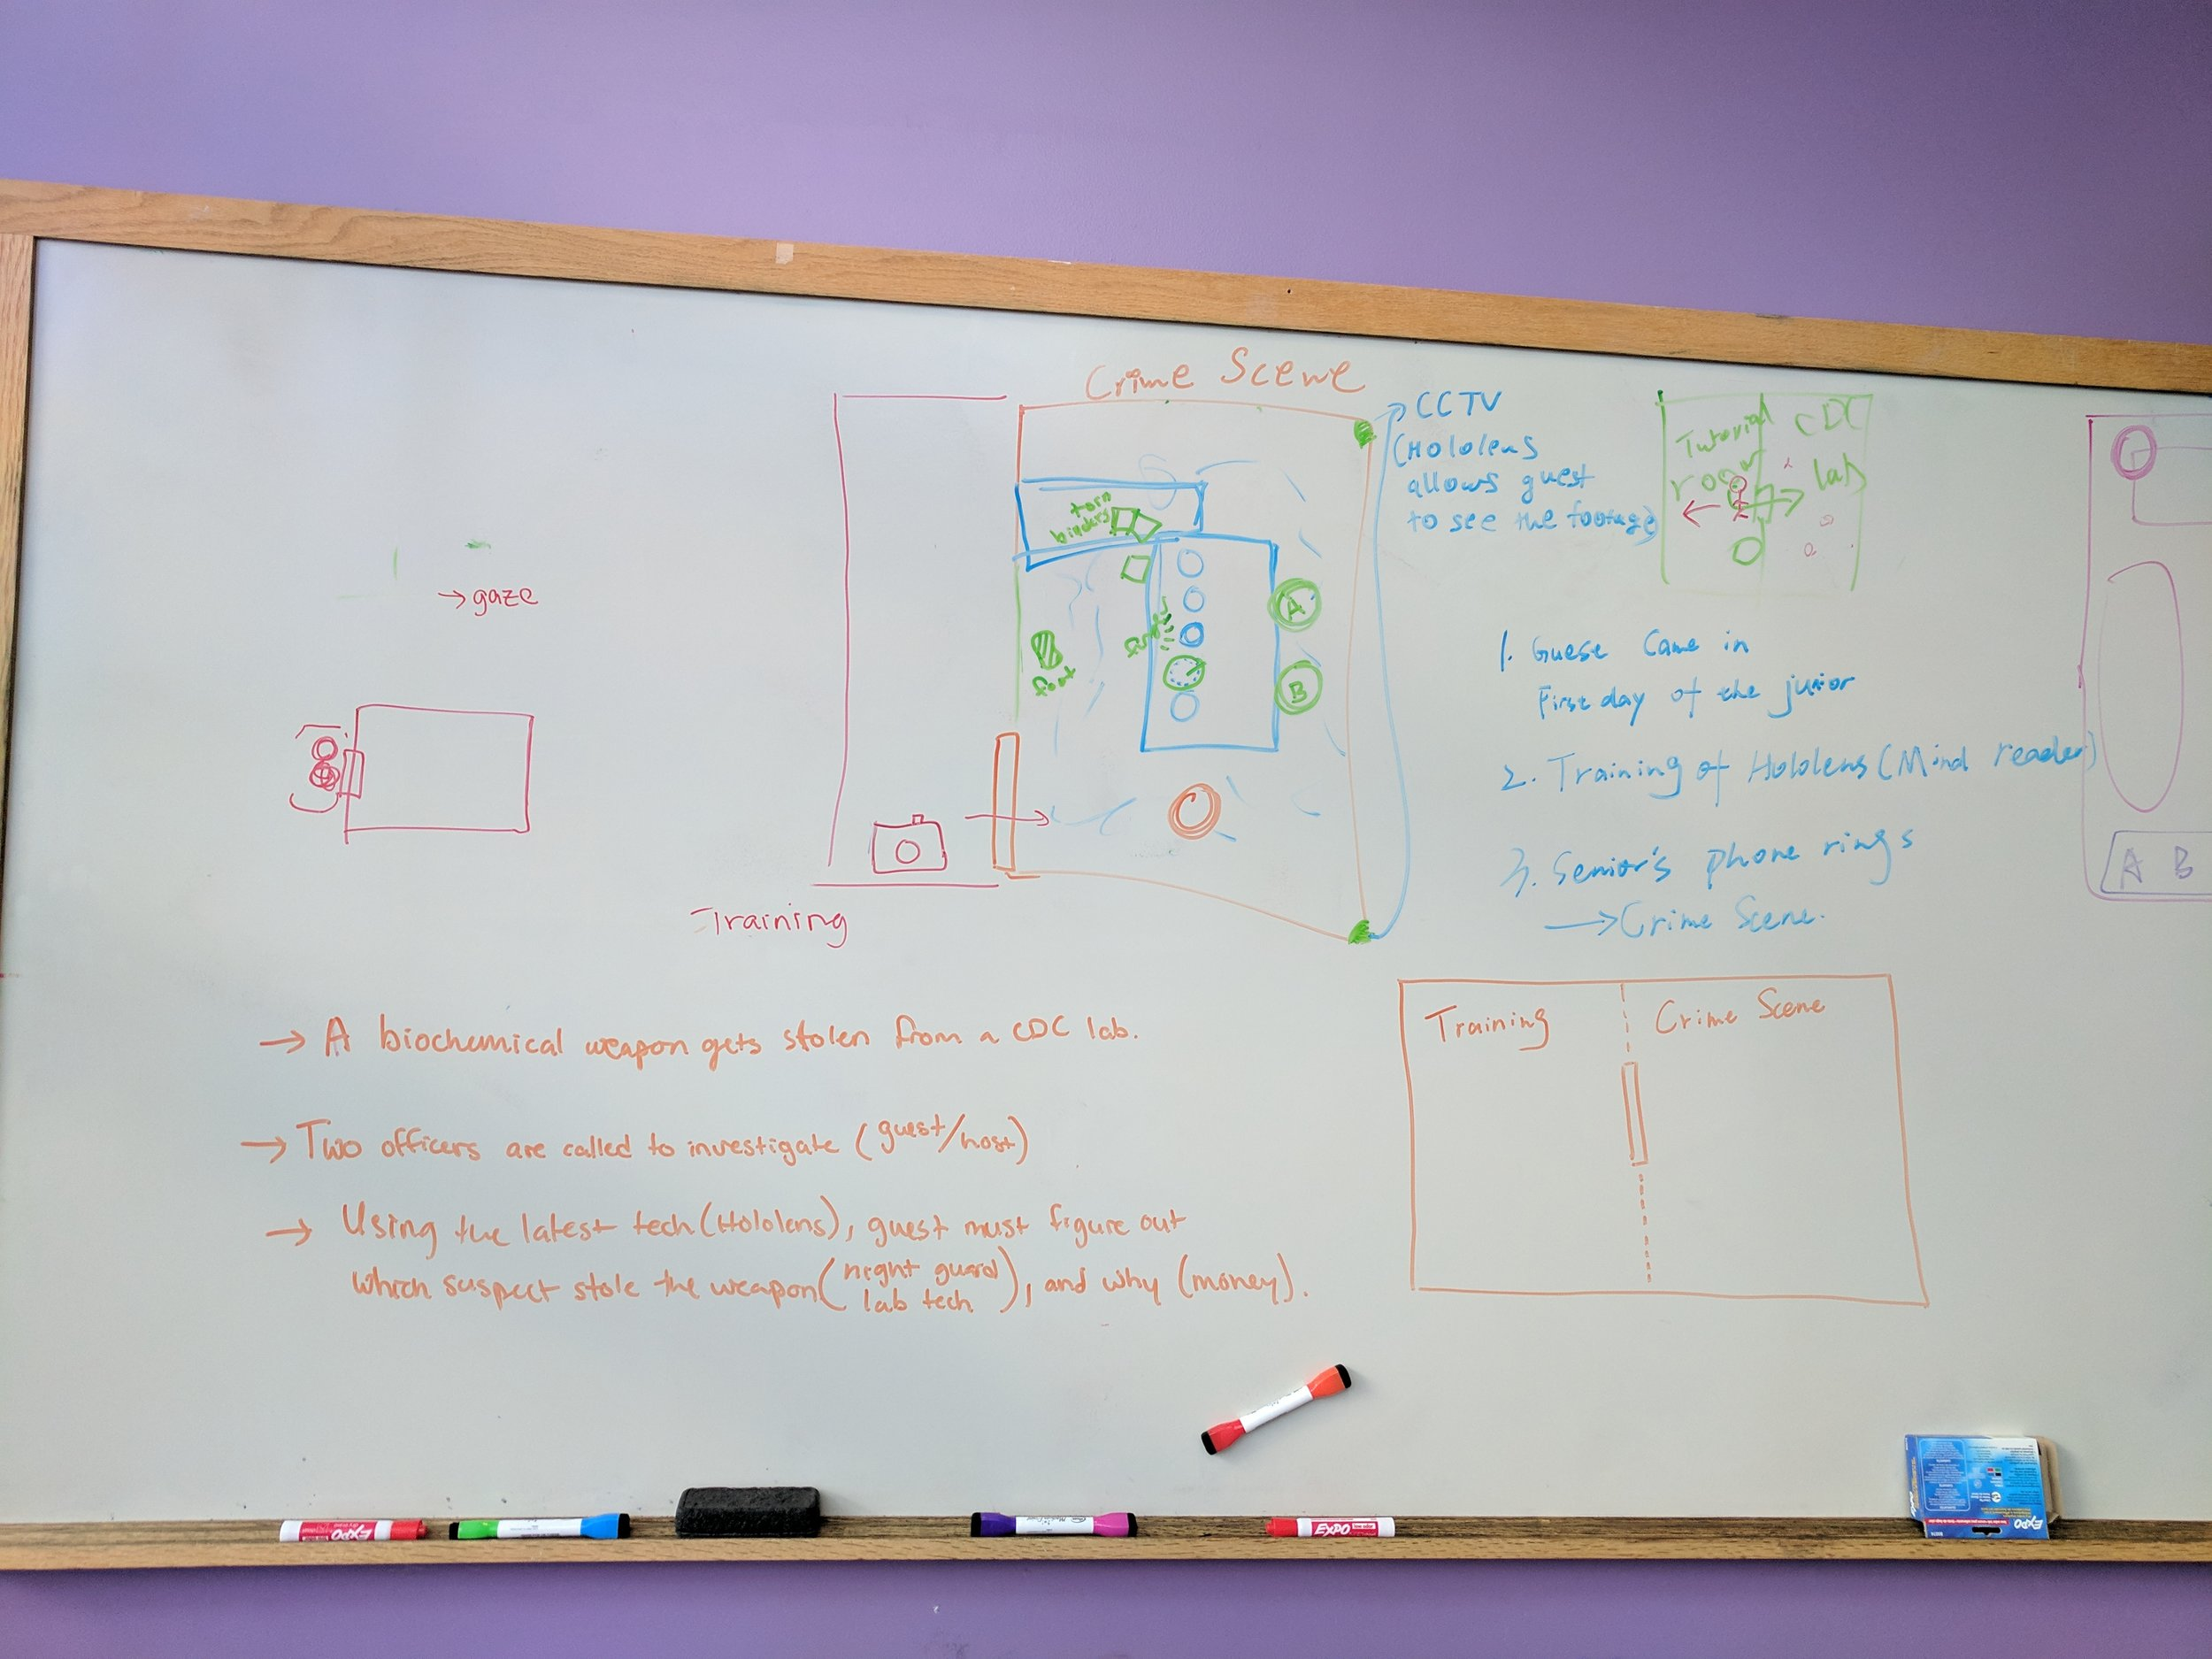 Mapping out the reworked story and presentation of the experience.